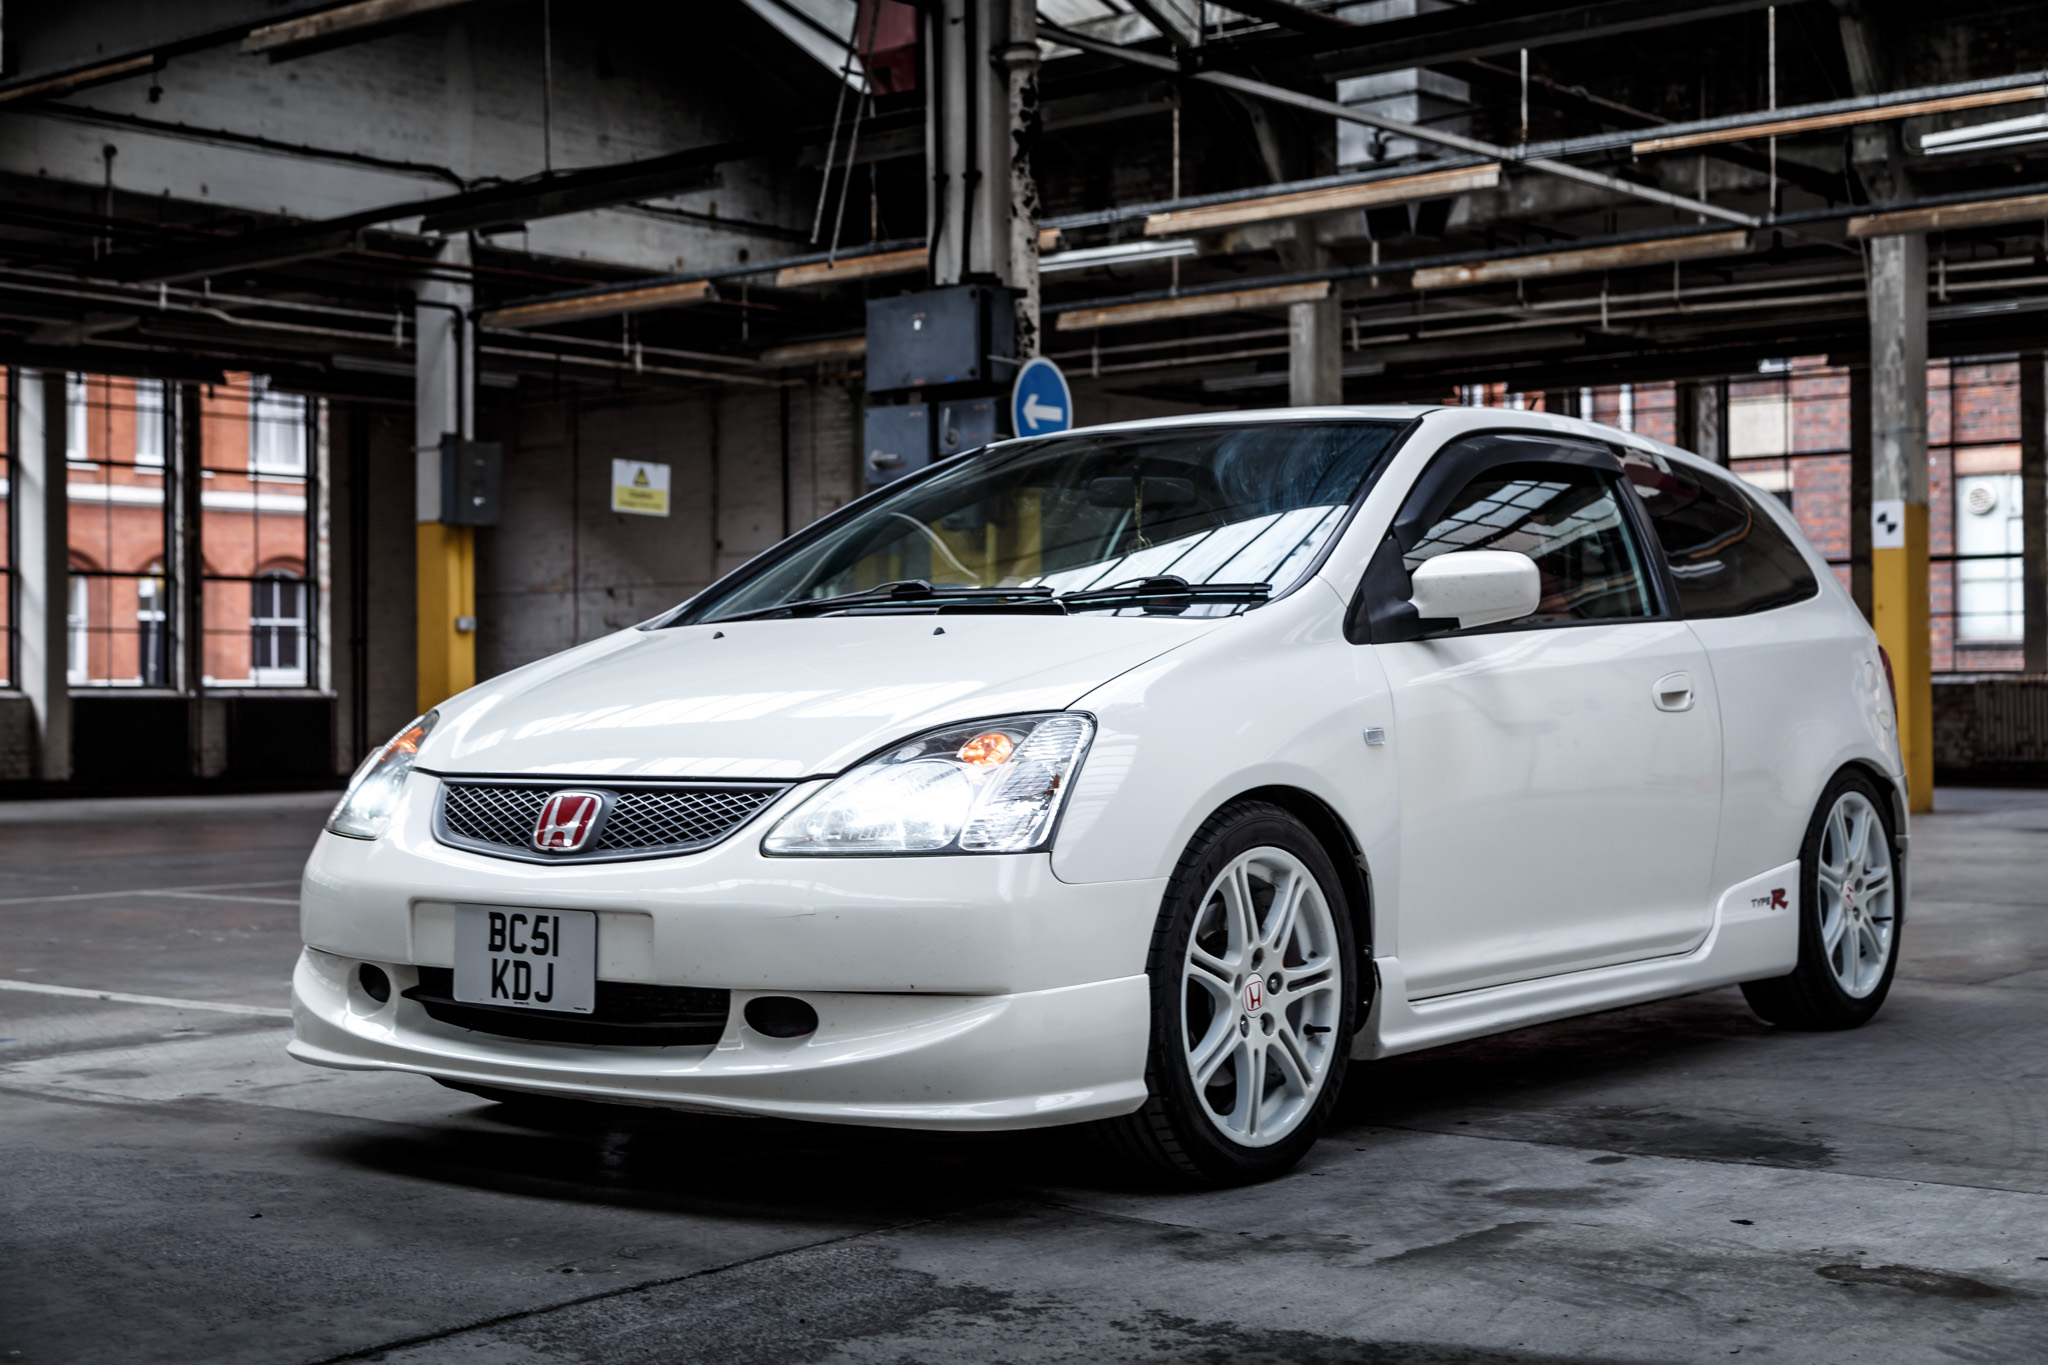 Jdm Ep3 Honda Civic Type R